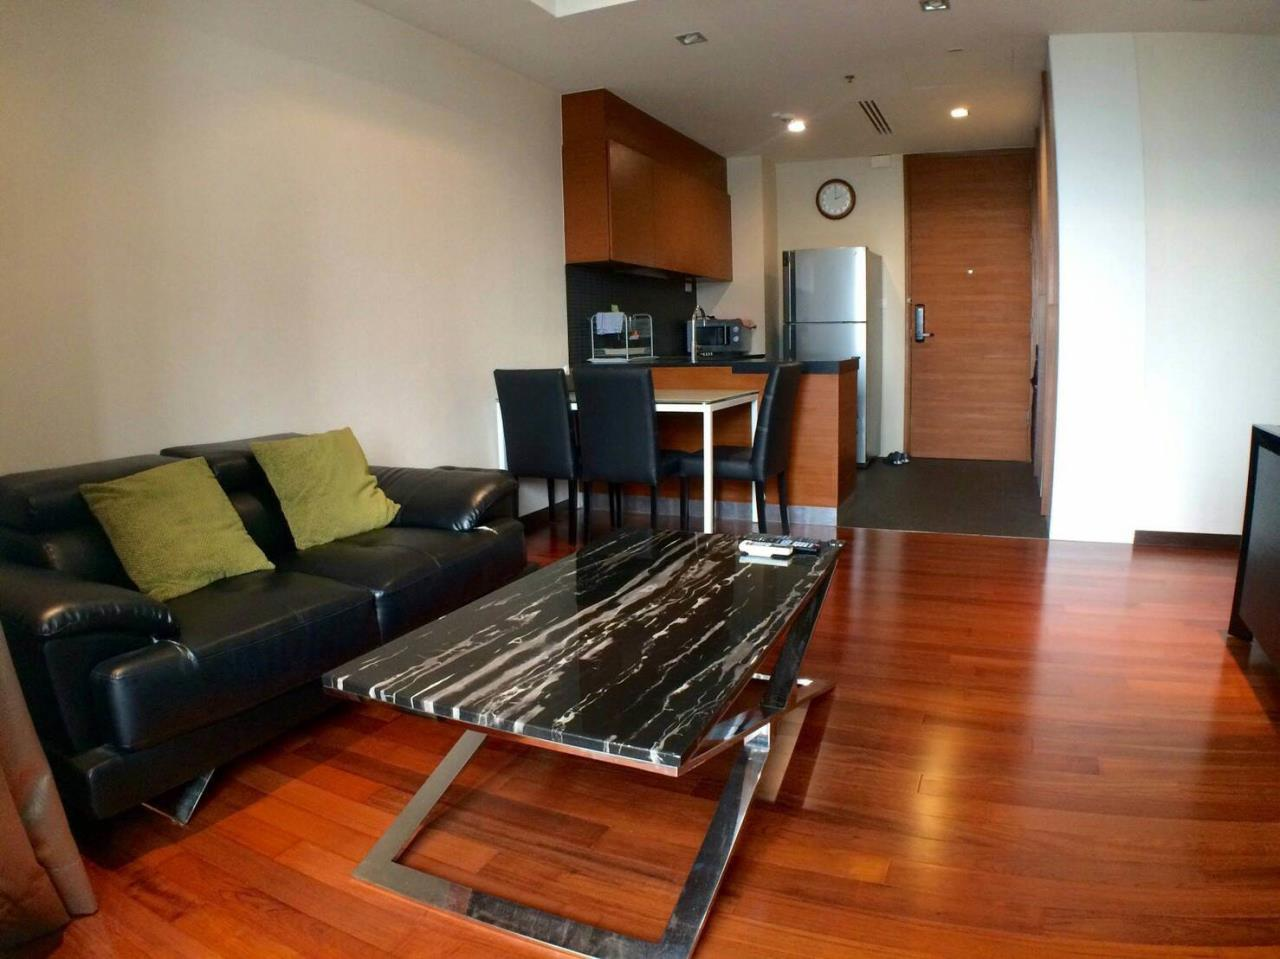 SALA ESTATE Agency's Ashton Morph Sukhumvit 38 - BTS Thonglor - Pets allows, Free shuttle service. 1